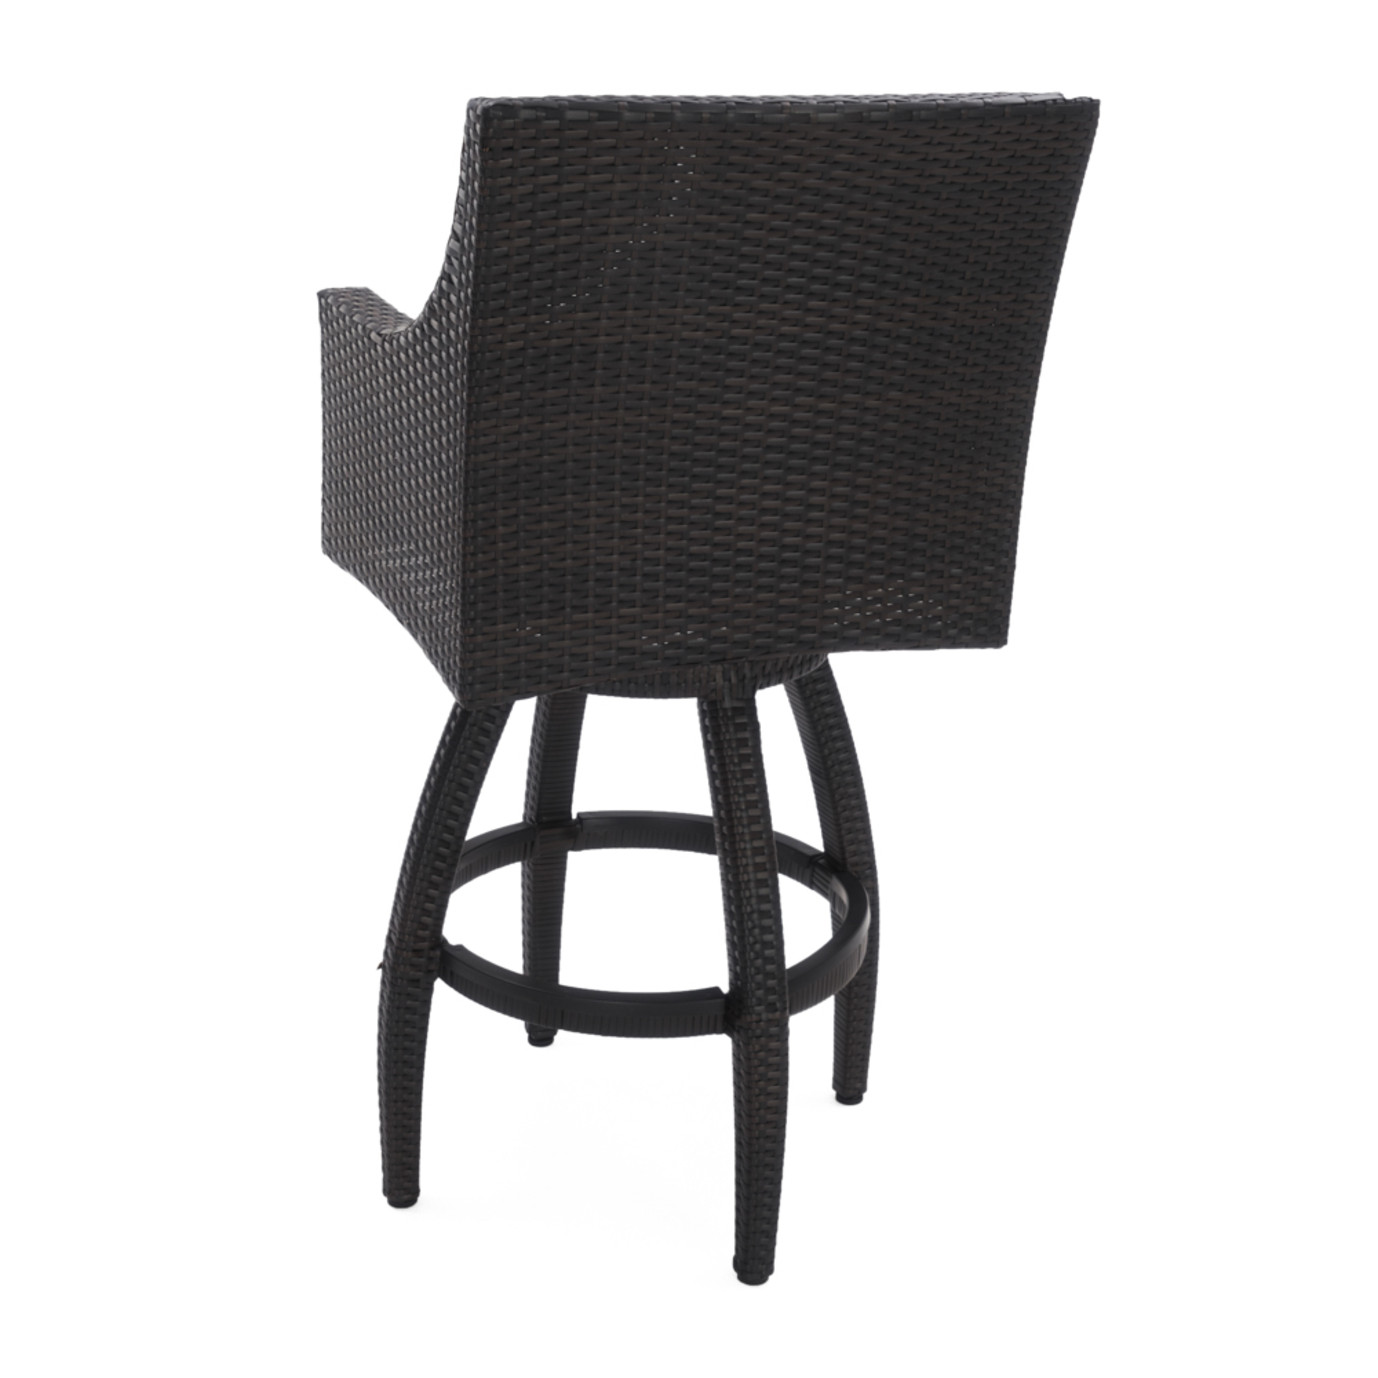 Deco™ Swivel Barstool 2pk - Charcoal Gray